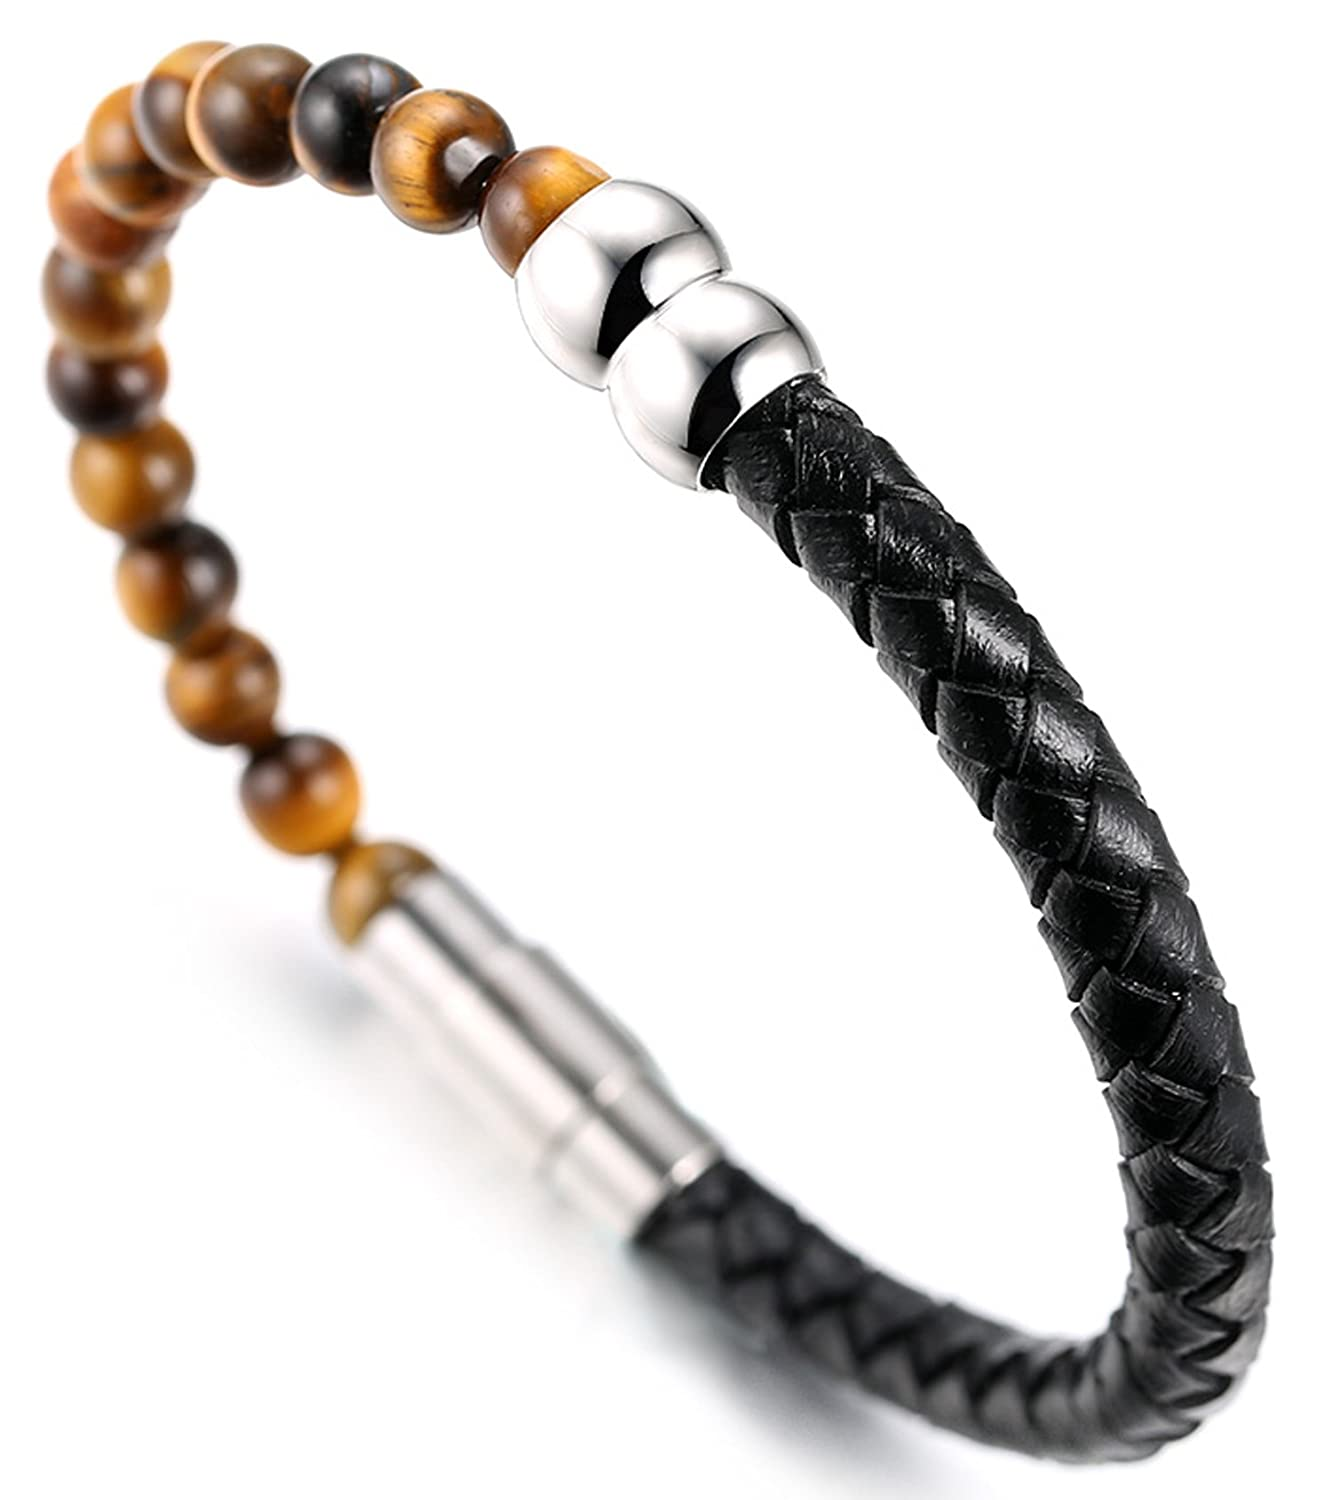 21.5cm Halukakah ● Salute The Earth ● Mens Genuine Leather Bracelet with Natural Tiger Eye//Obisidian//Agate Stone Beads 8.46 with Free Giftbox